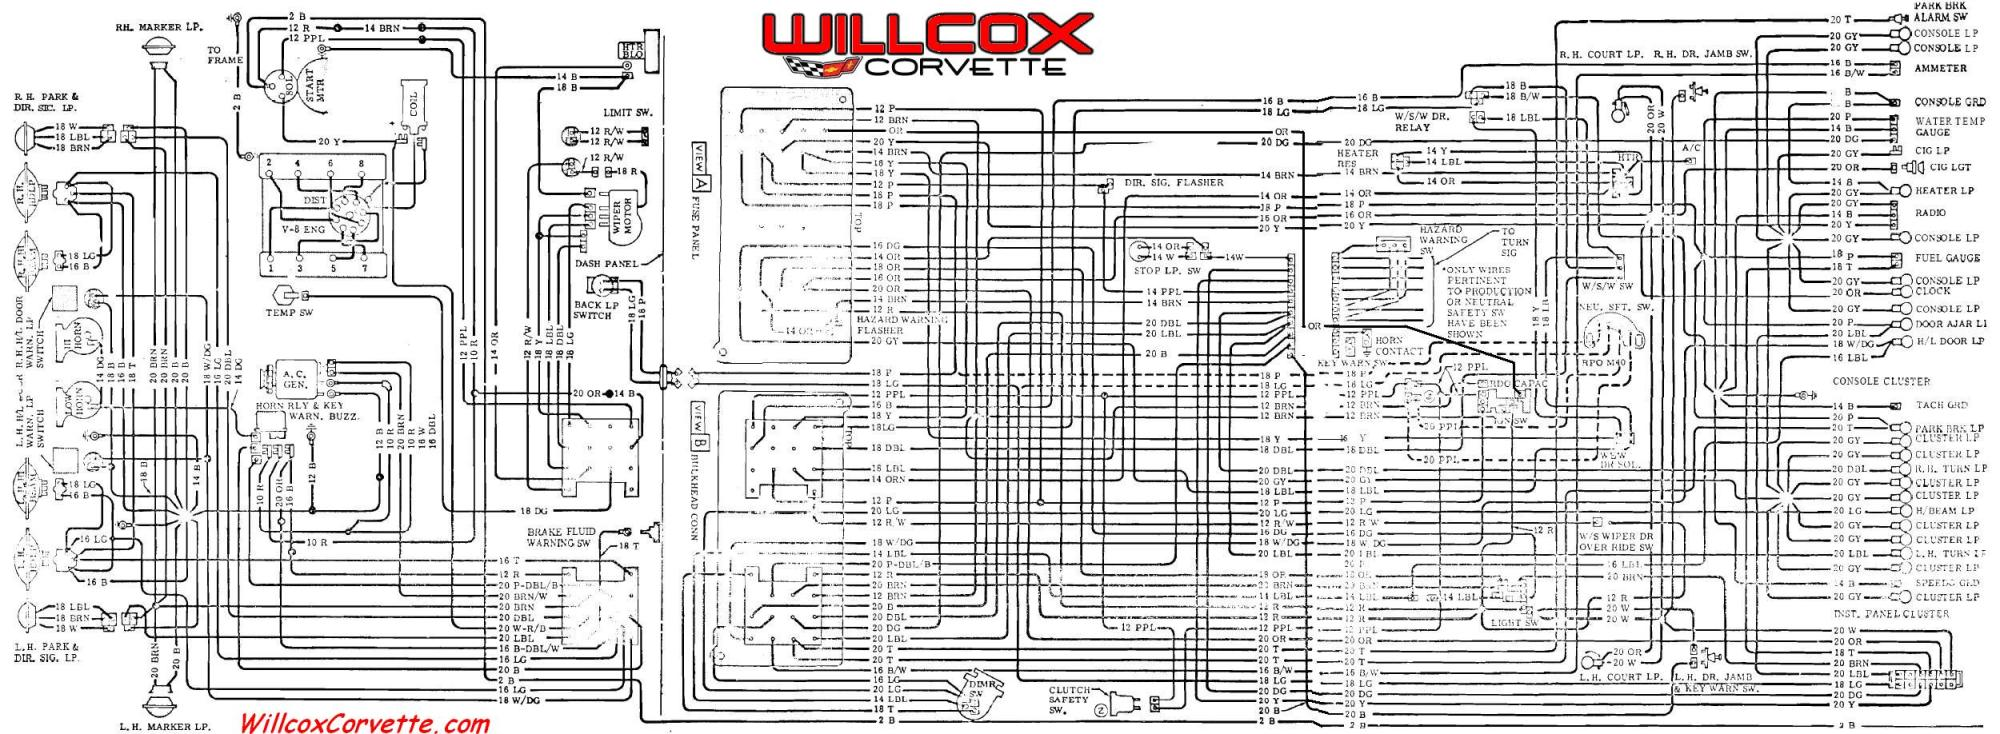 hight resolution of 1964 corvette fuse box wiring wiring diagram pass 1964 corvette radio wiring diagram 1964 corvette starter